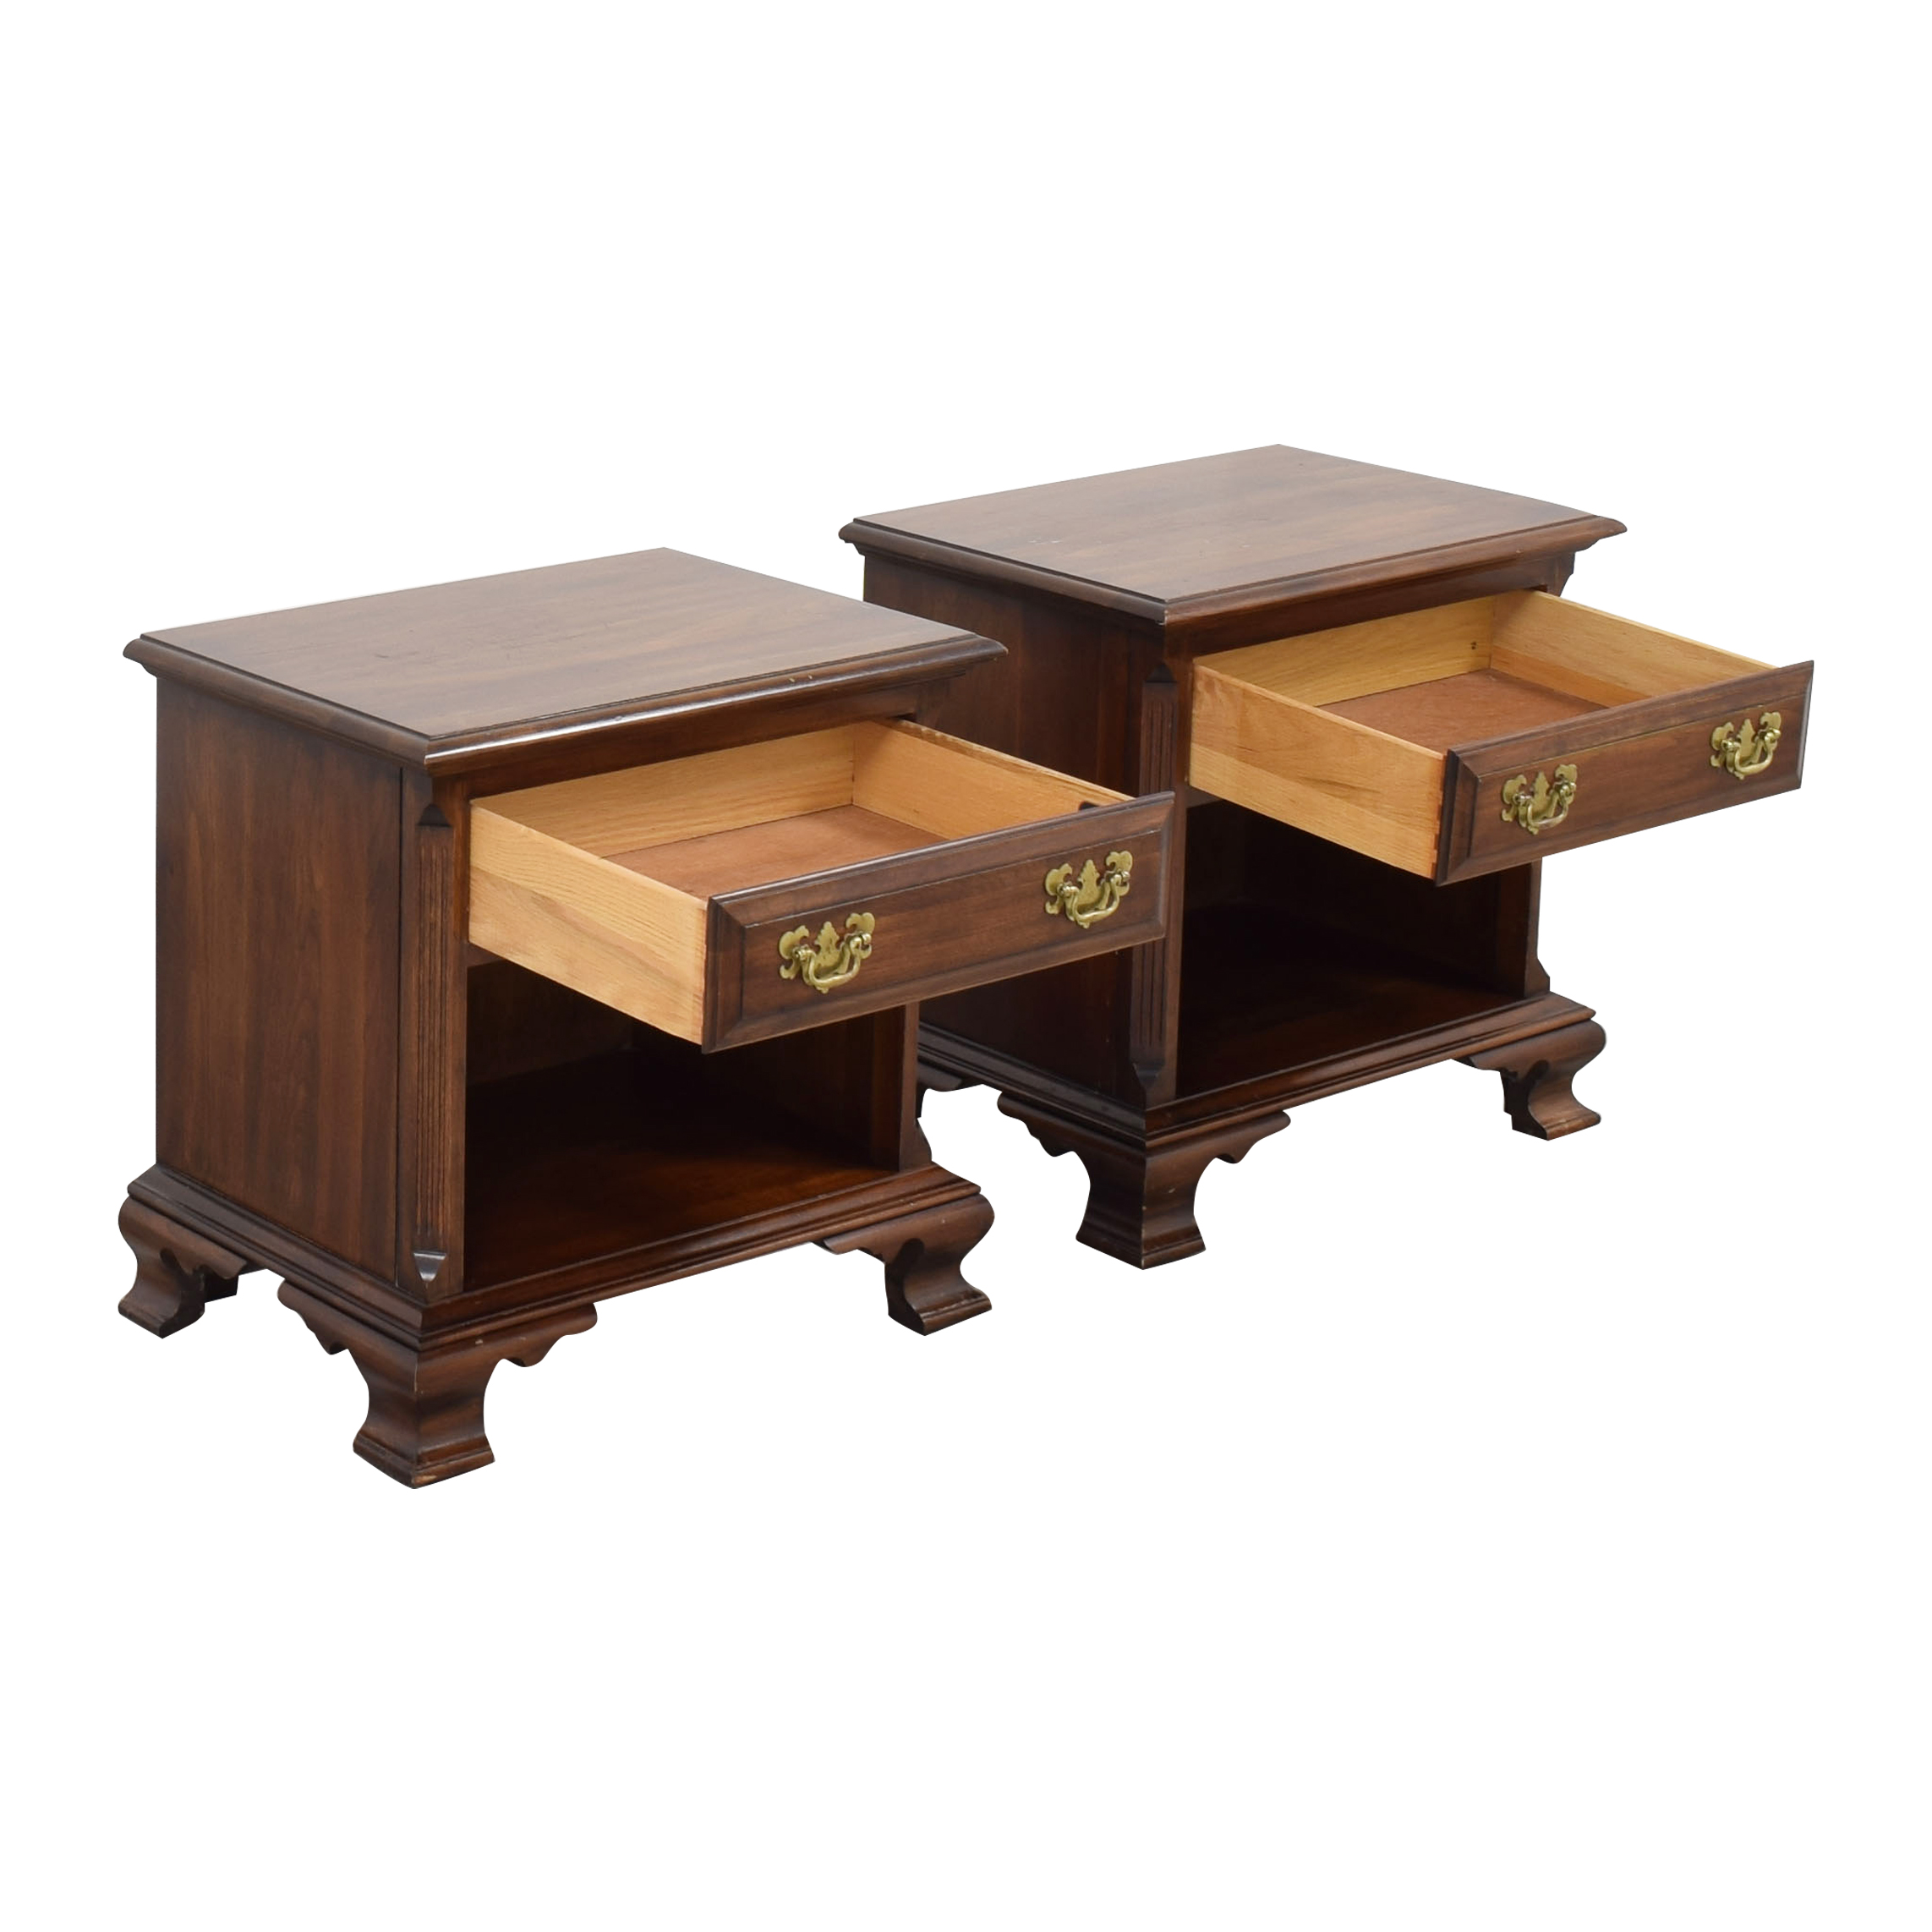 Pennsylvania House Pennsylvania House Federal Style Nightstands second hand